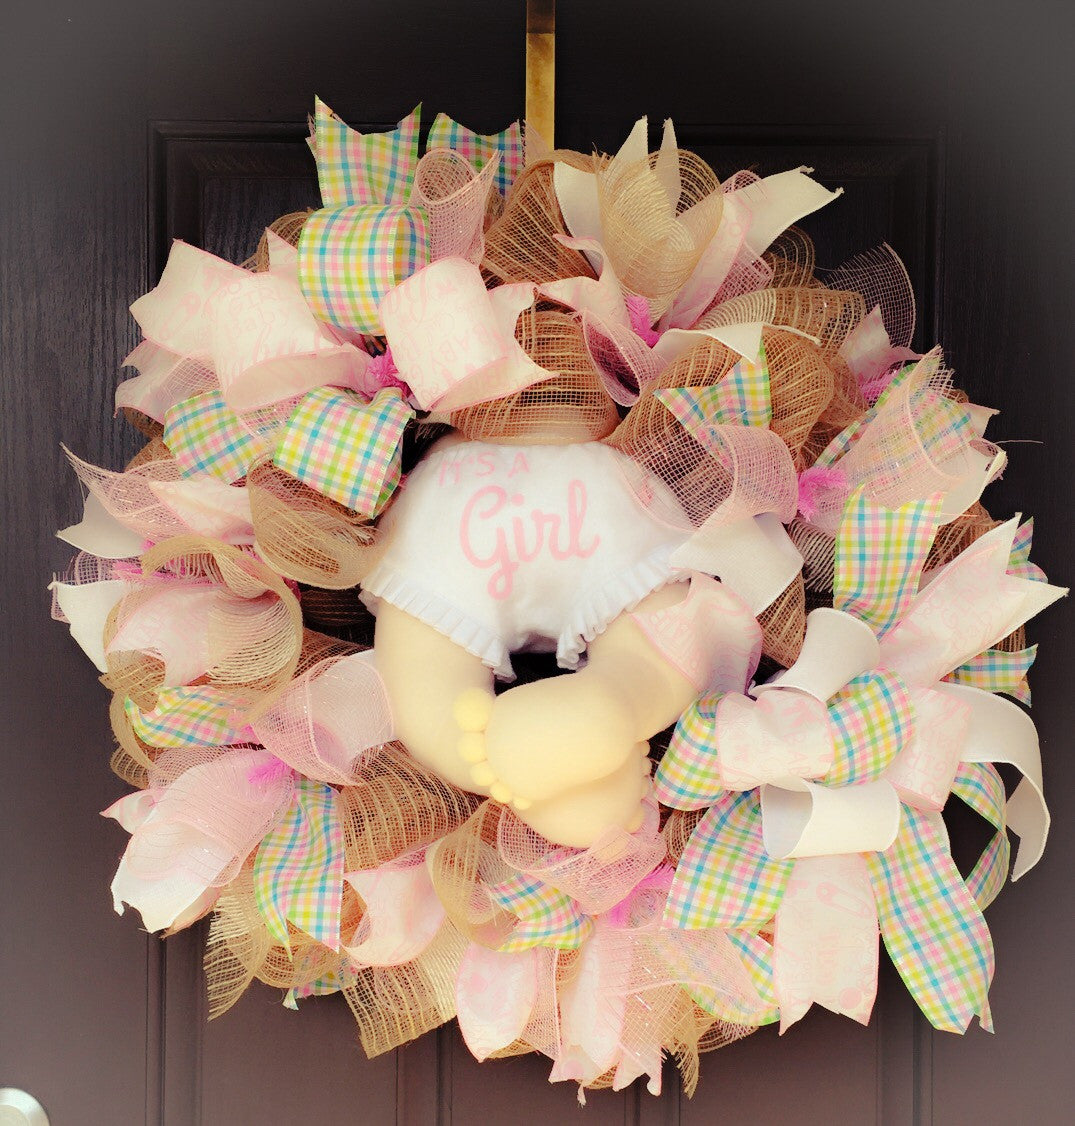 Baby Wreath - Destined with Creativity